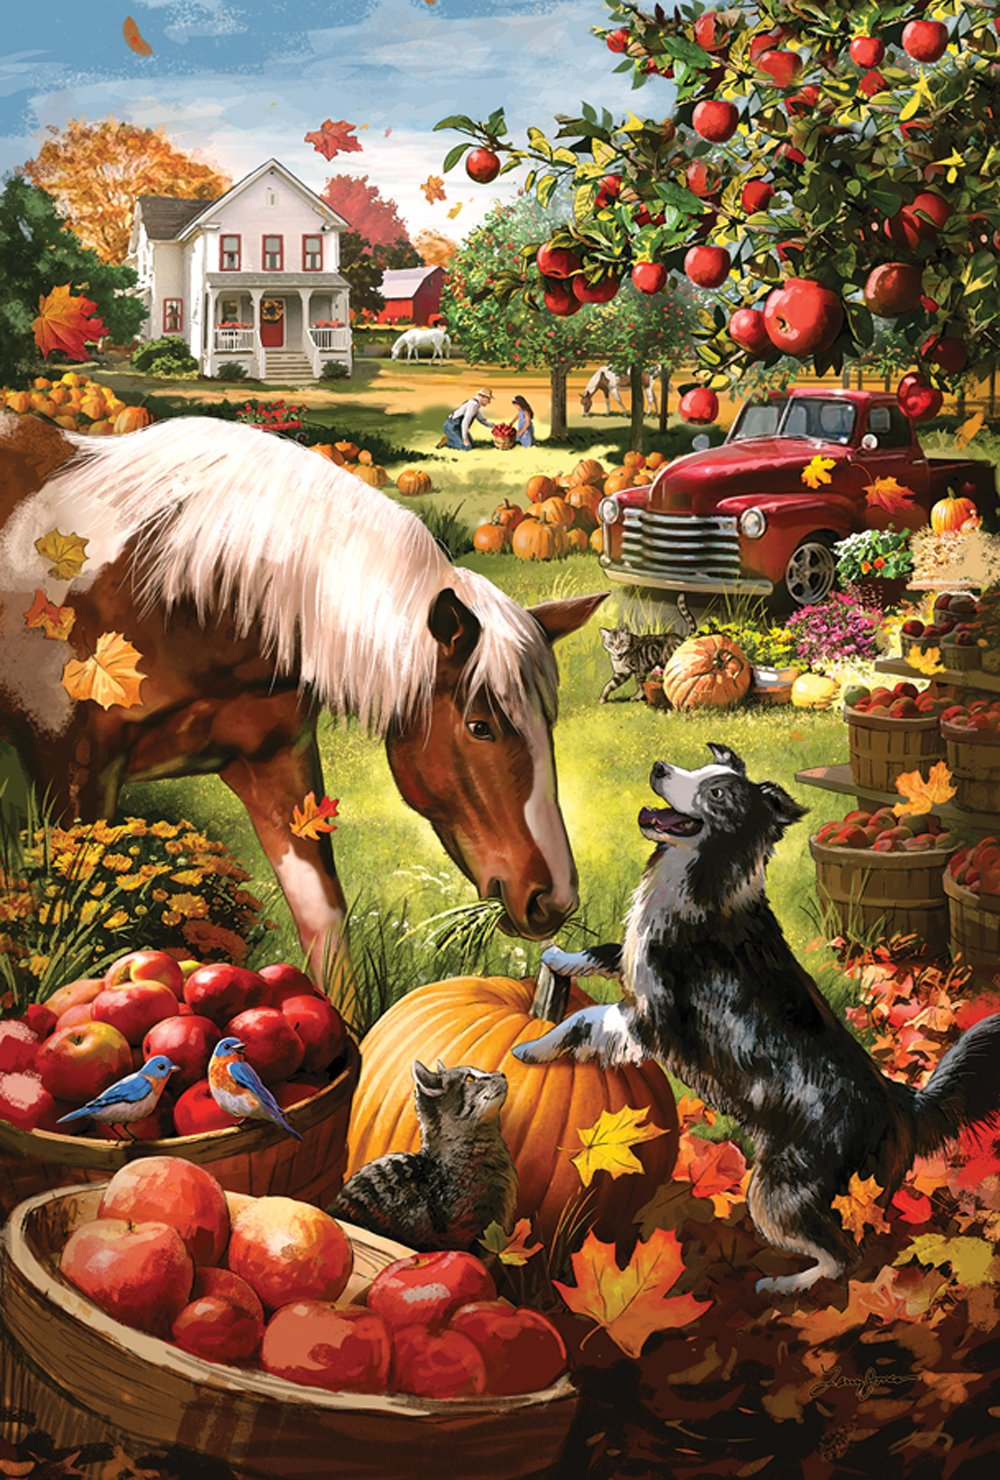 Toland Home Garden Autumn Farm 28 x 40 Inch Decorative Fall Harvest Horse Dog House Flag